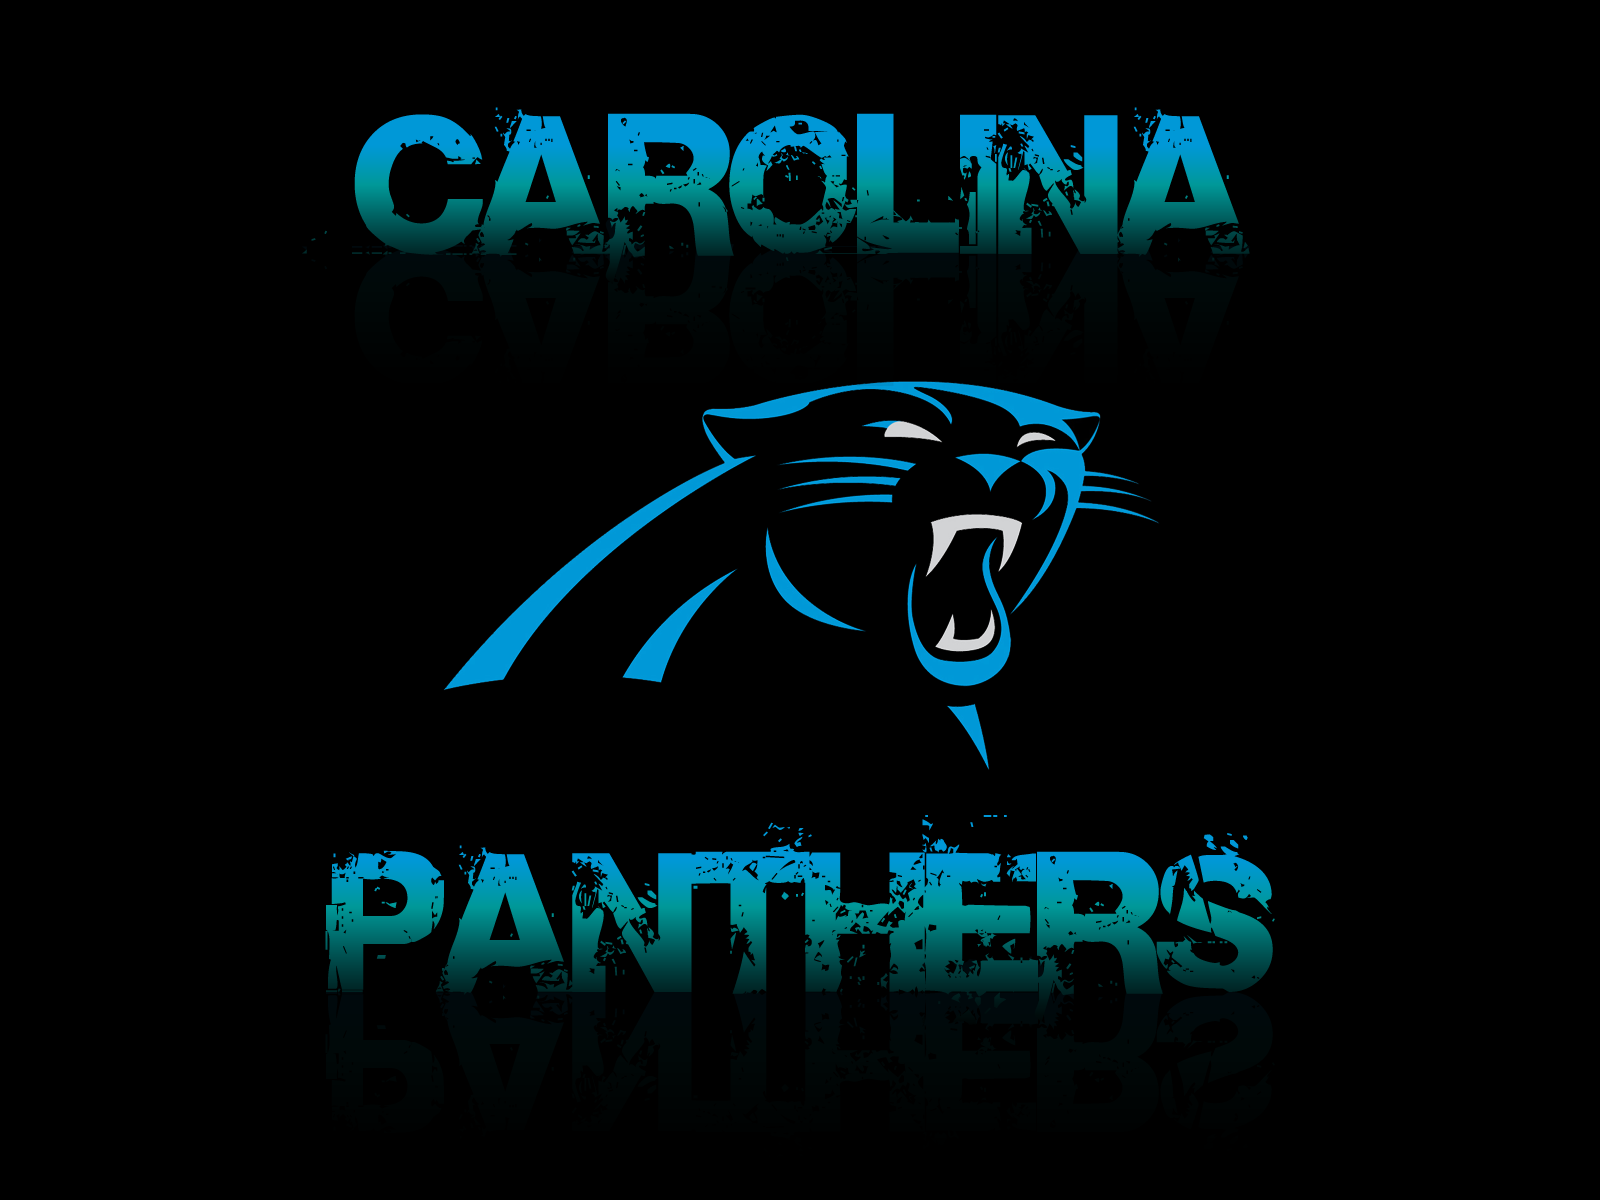 Carolina Panthers Dark Wallpaper for Phones and Tablets 1600x1200